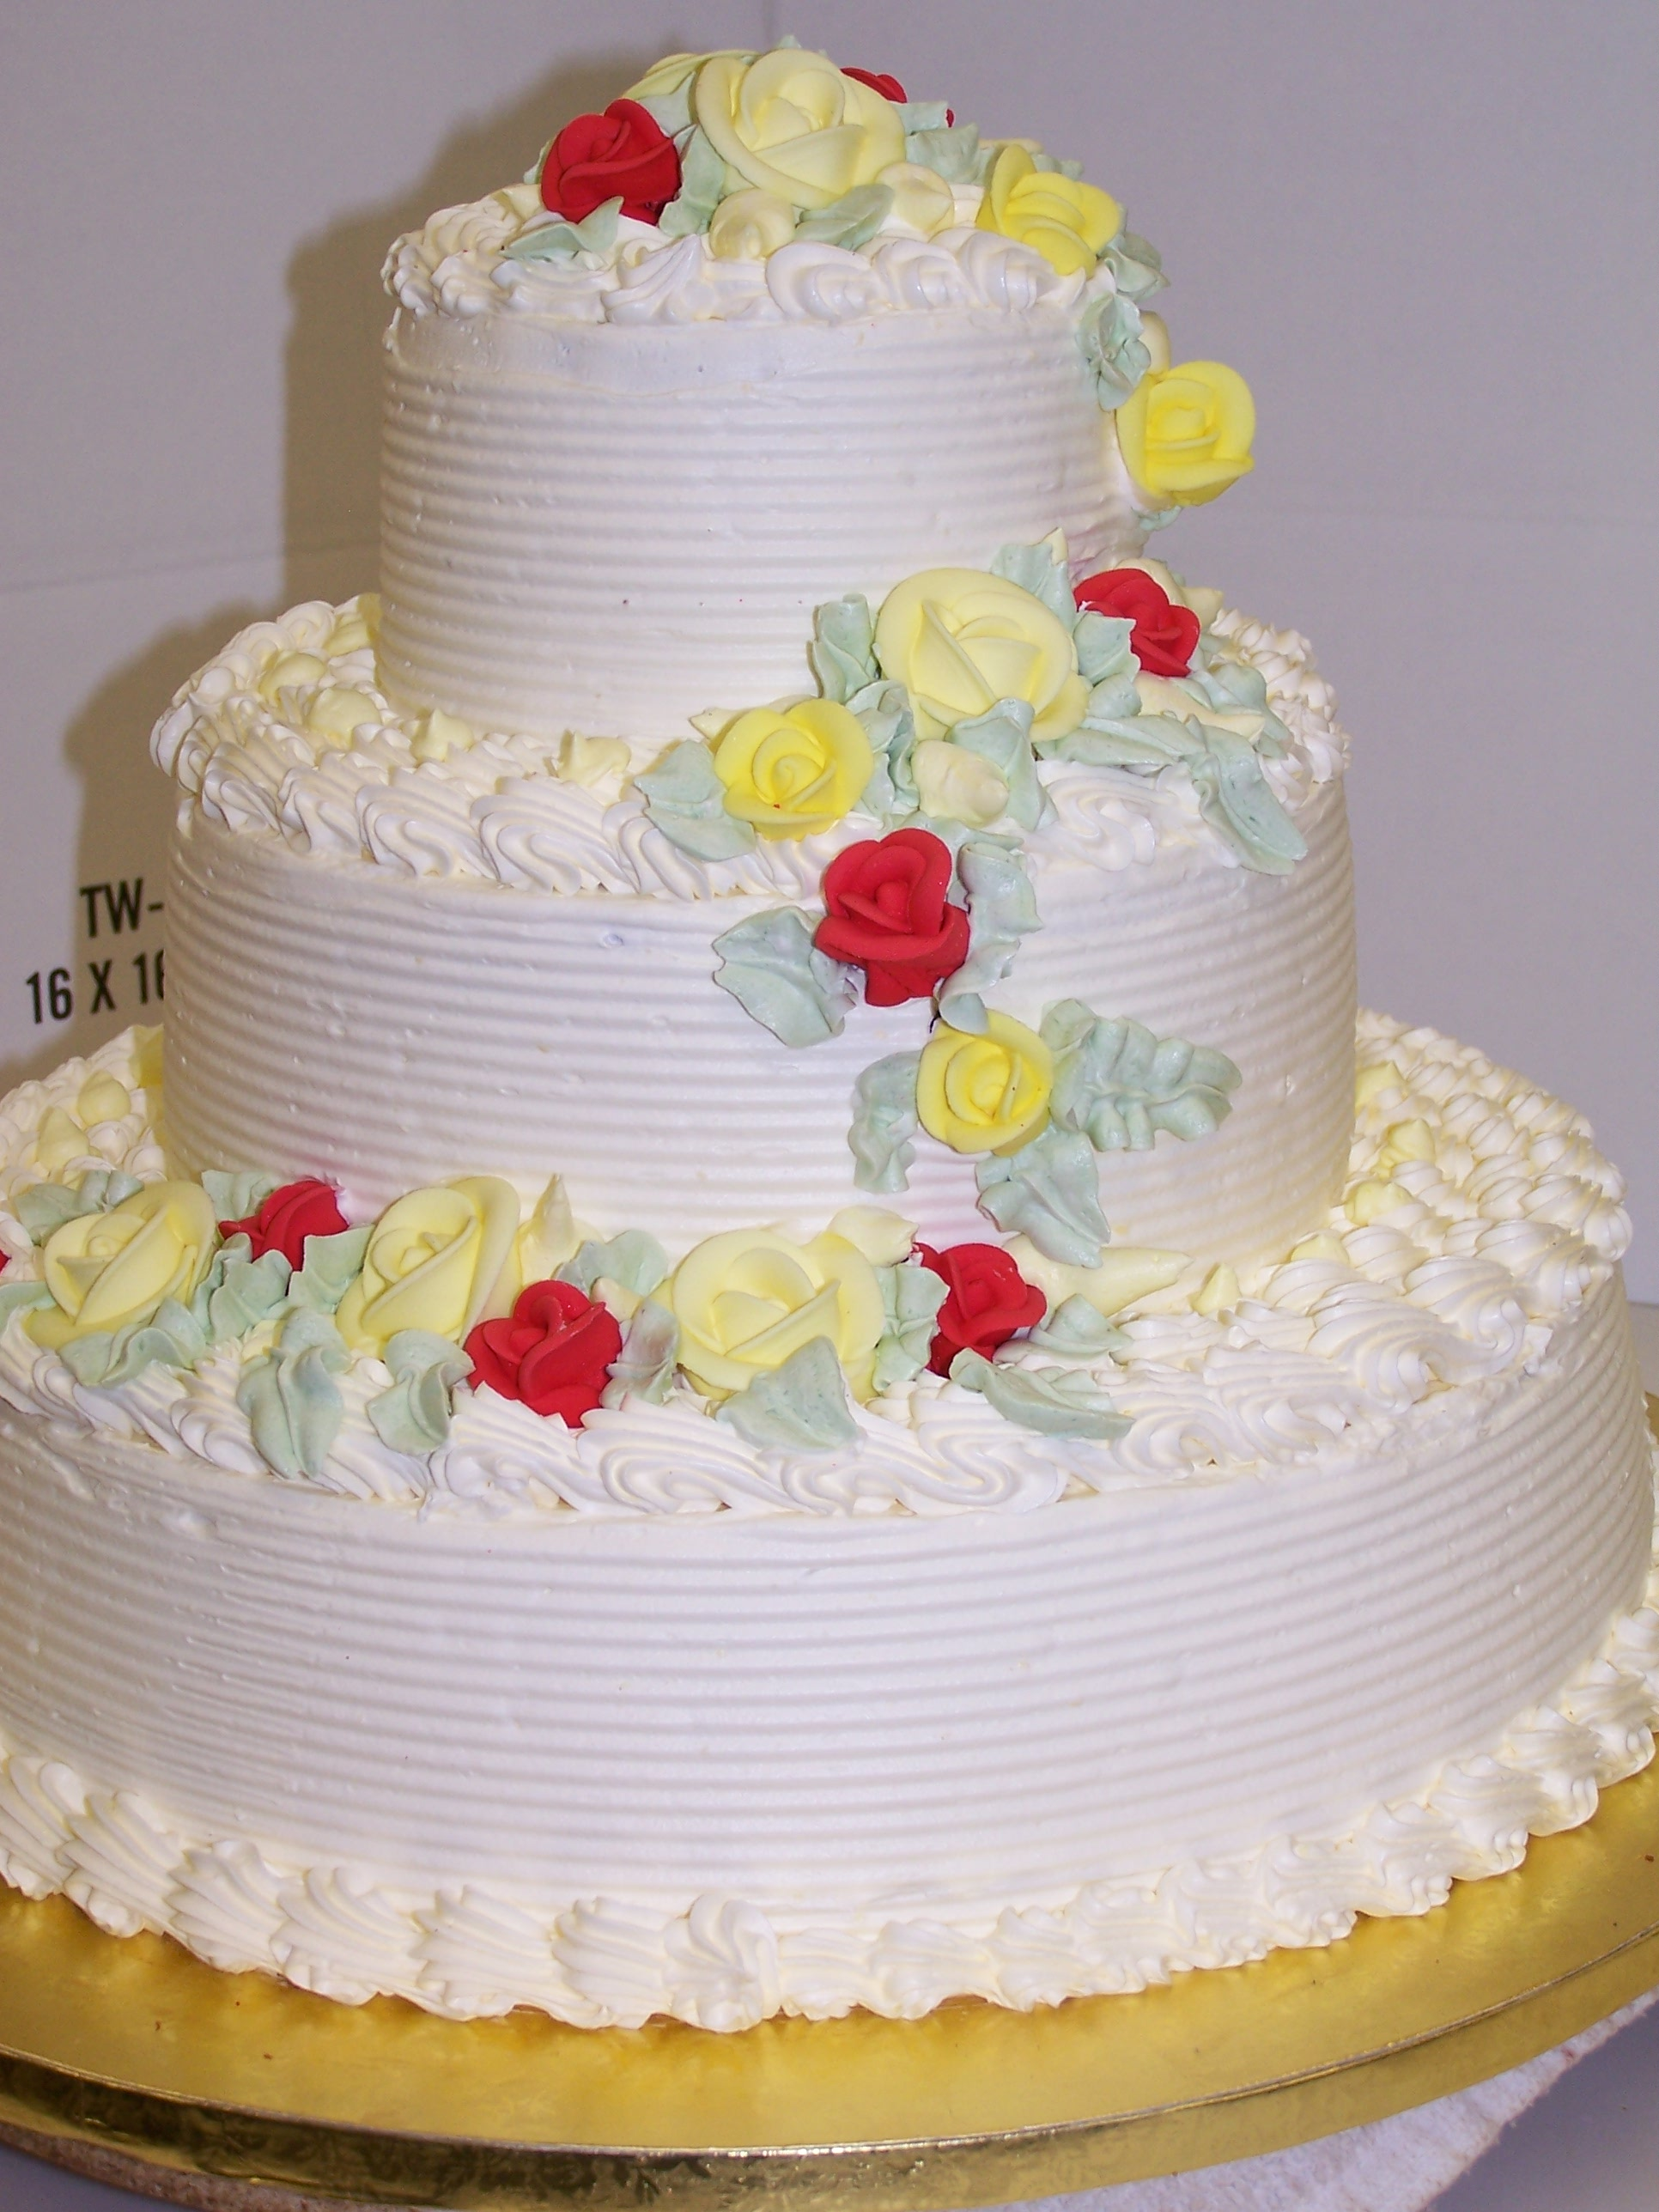 Stop And Shop Bakery Cake Order